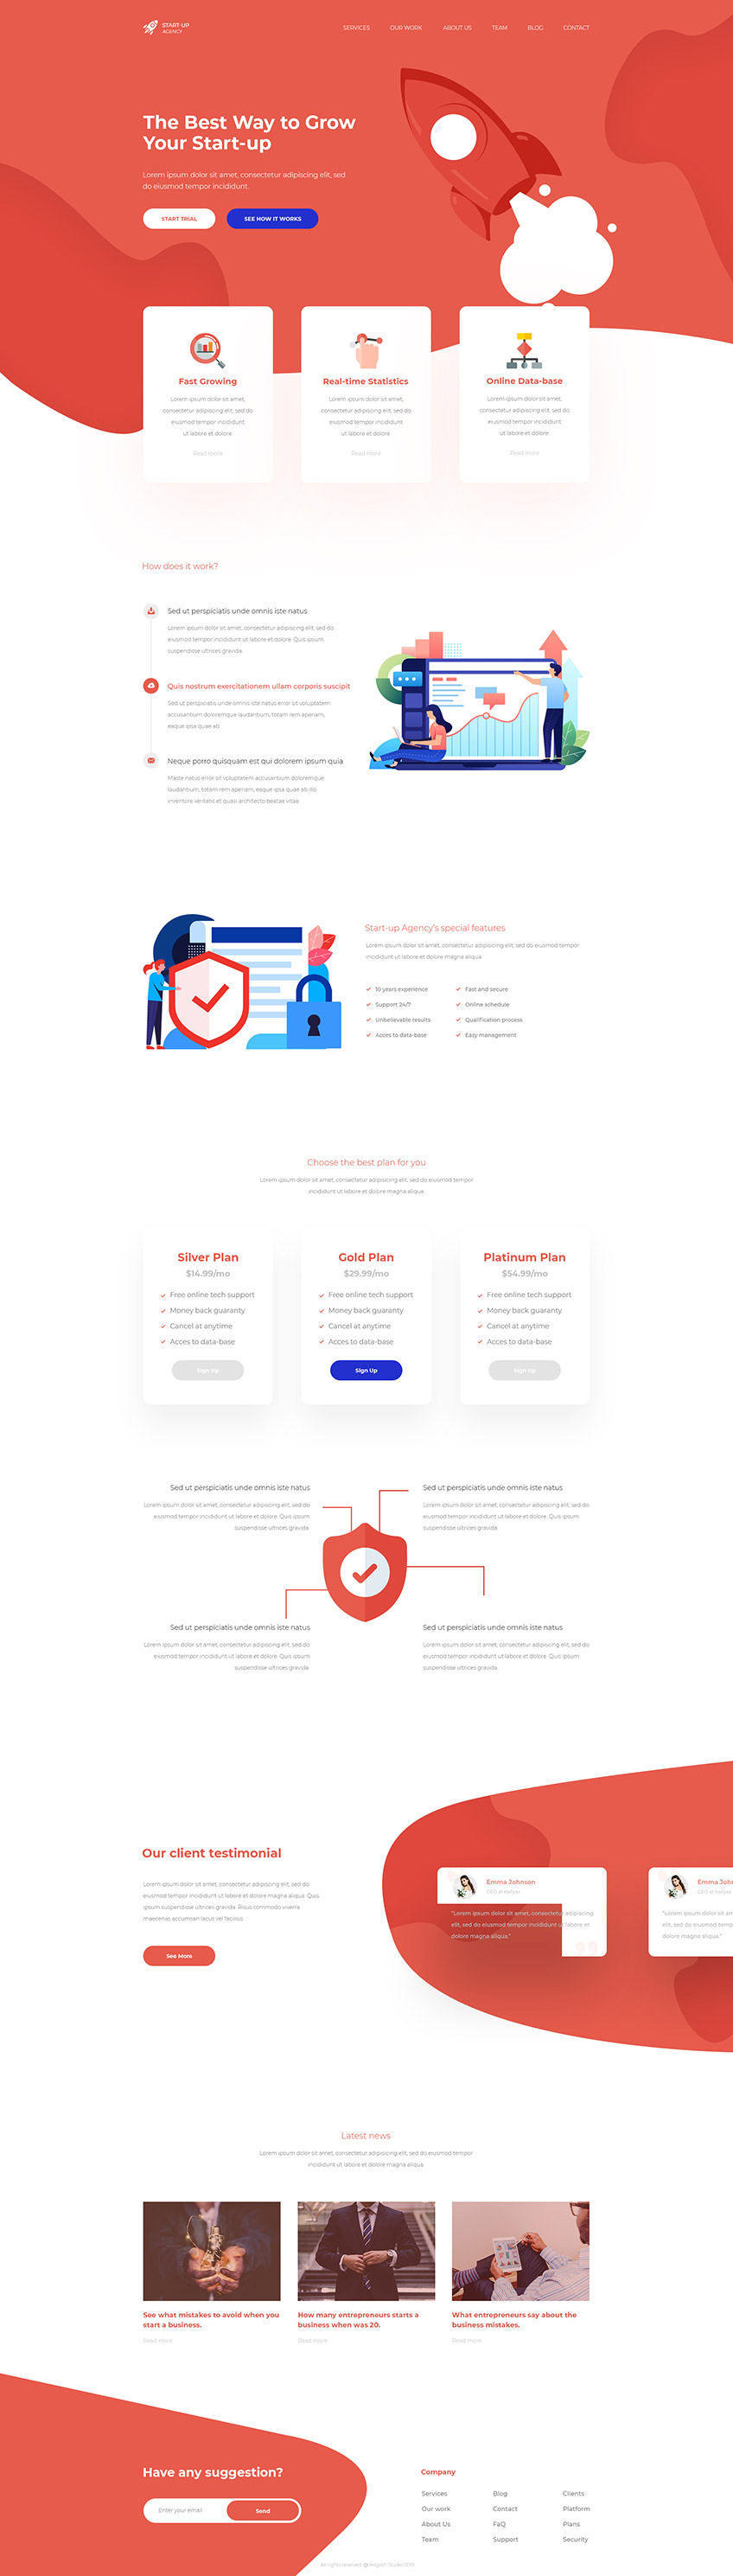 Start-up Agency - Free PSD Template